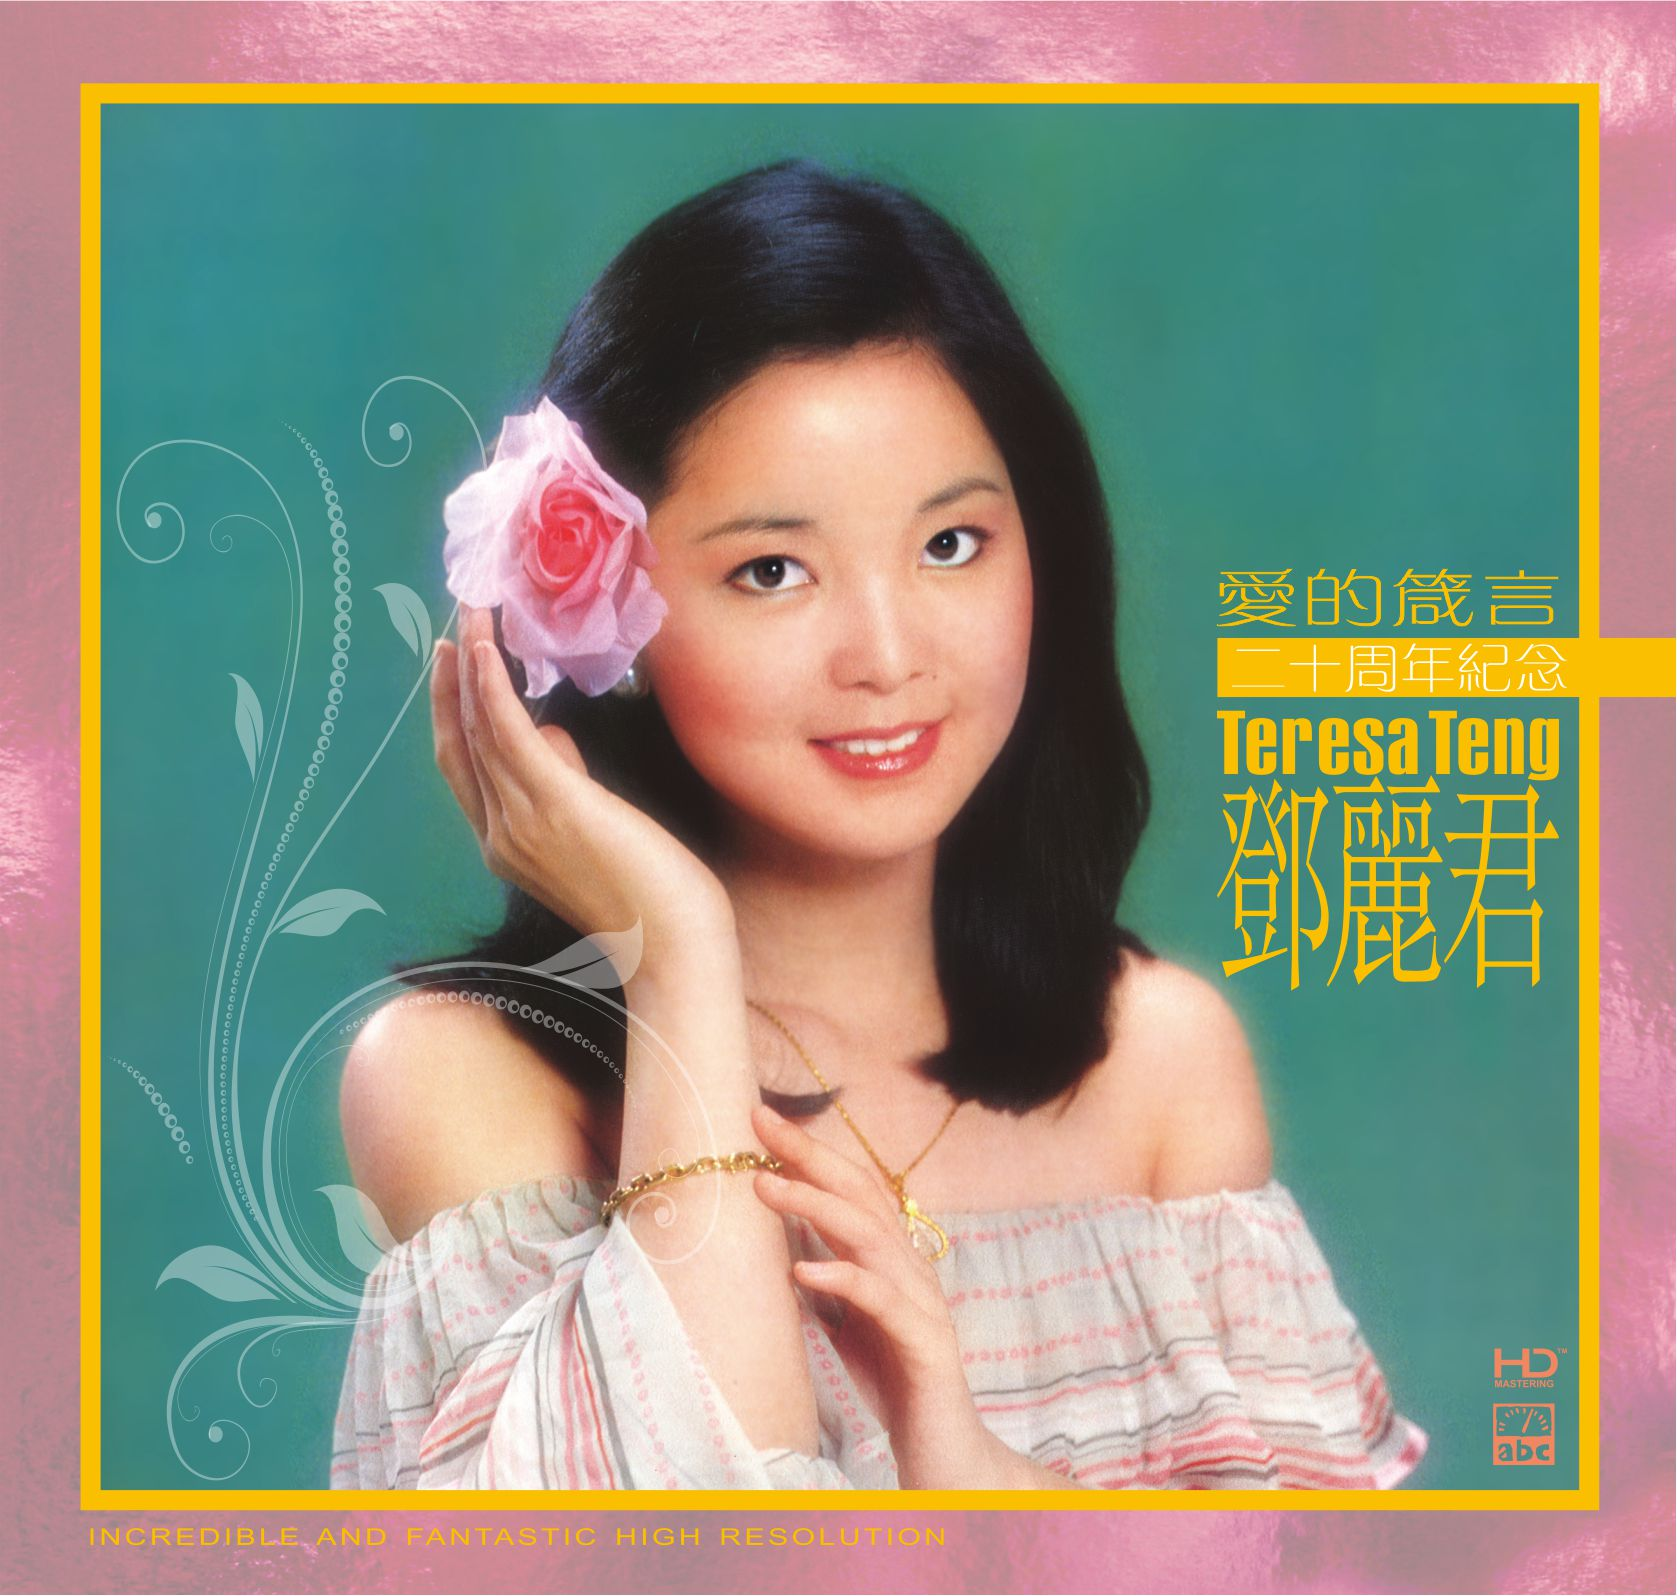 Teresa Teng 20 Years Memonto Chinese Music Hd